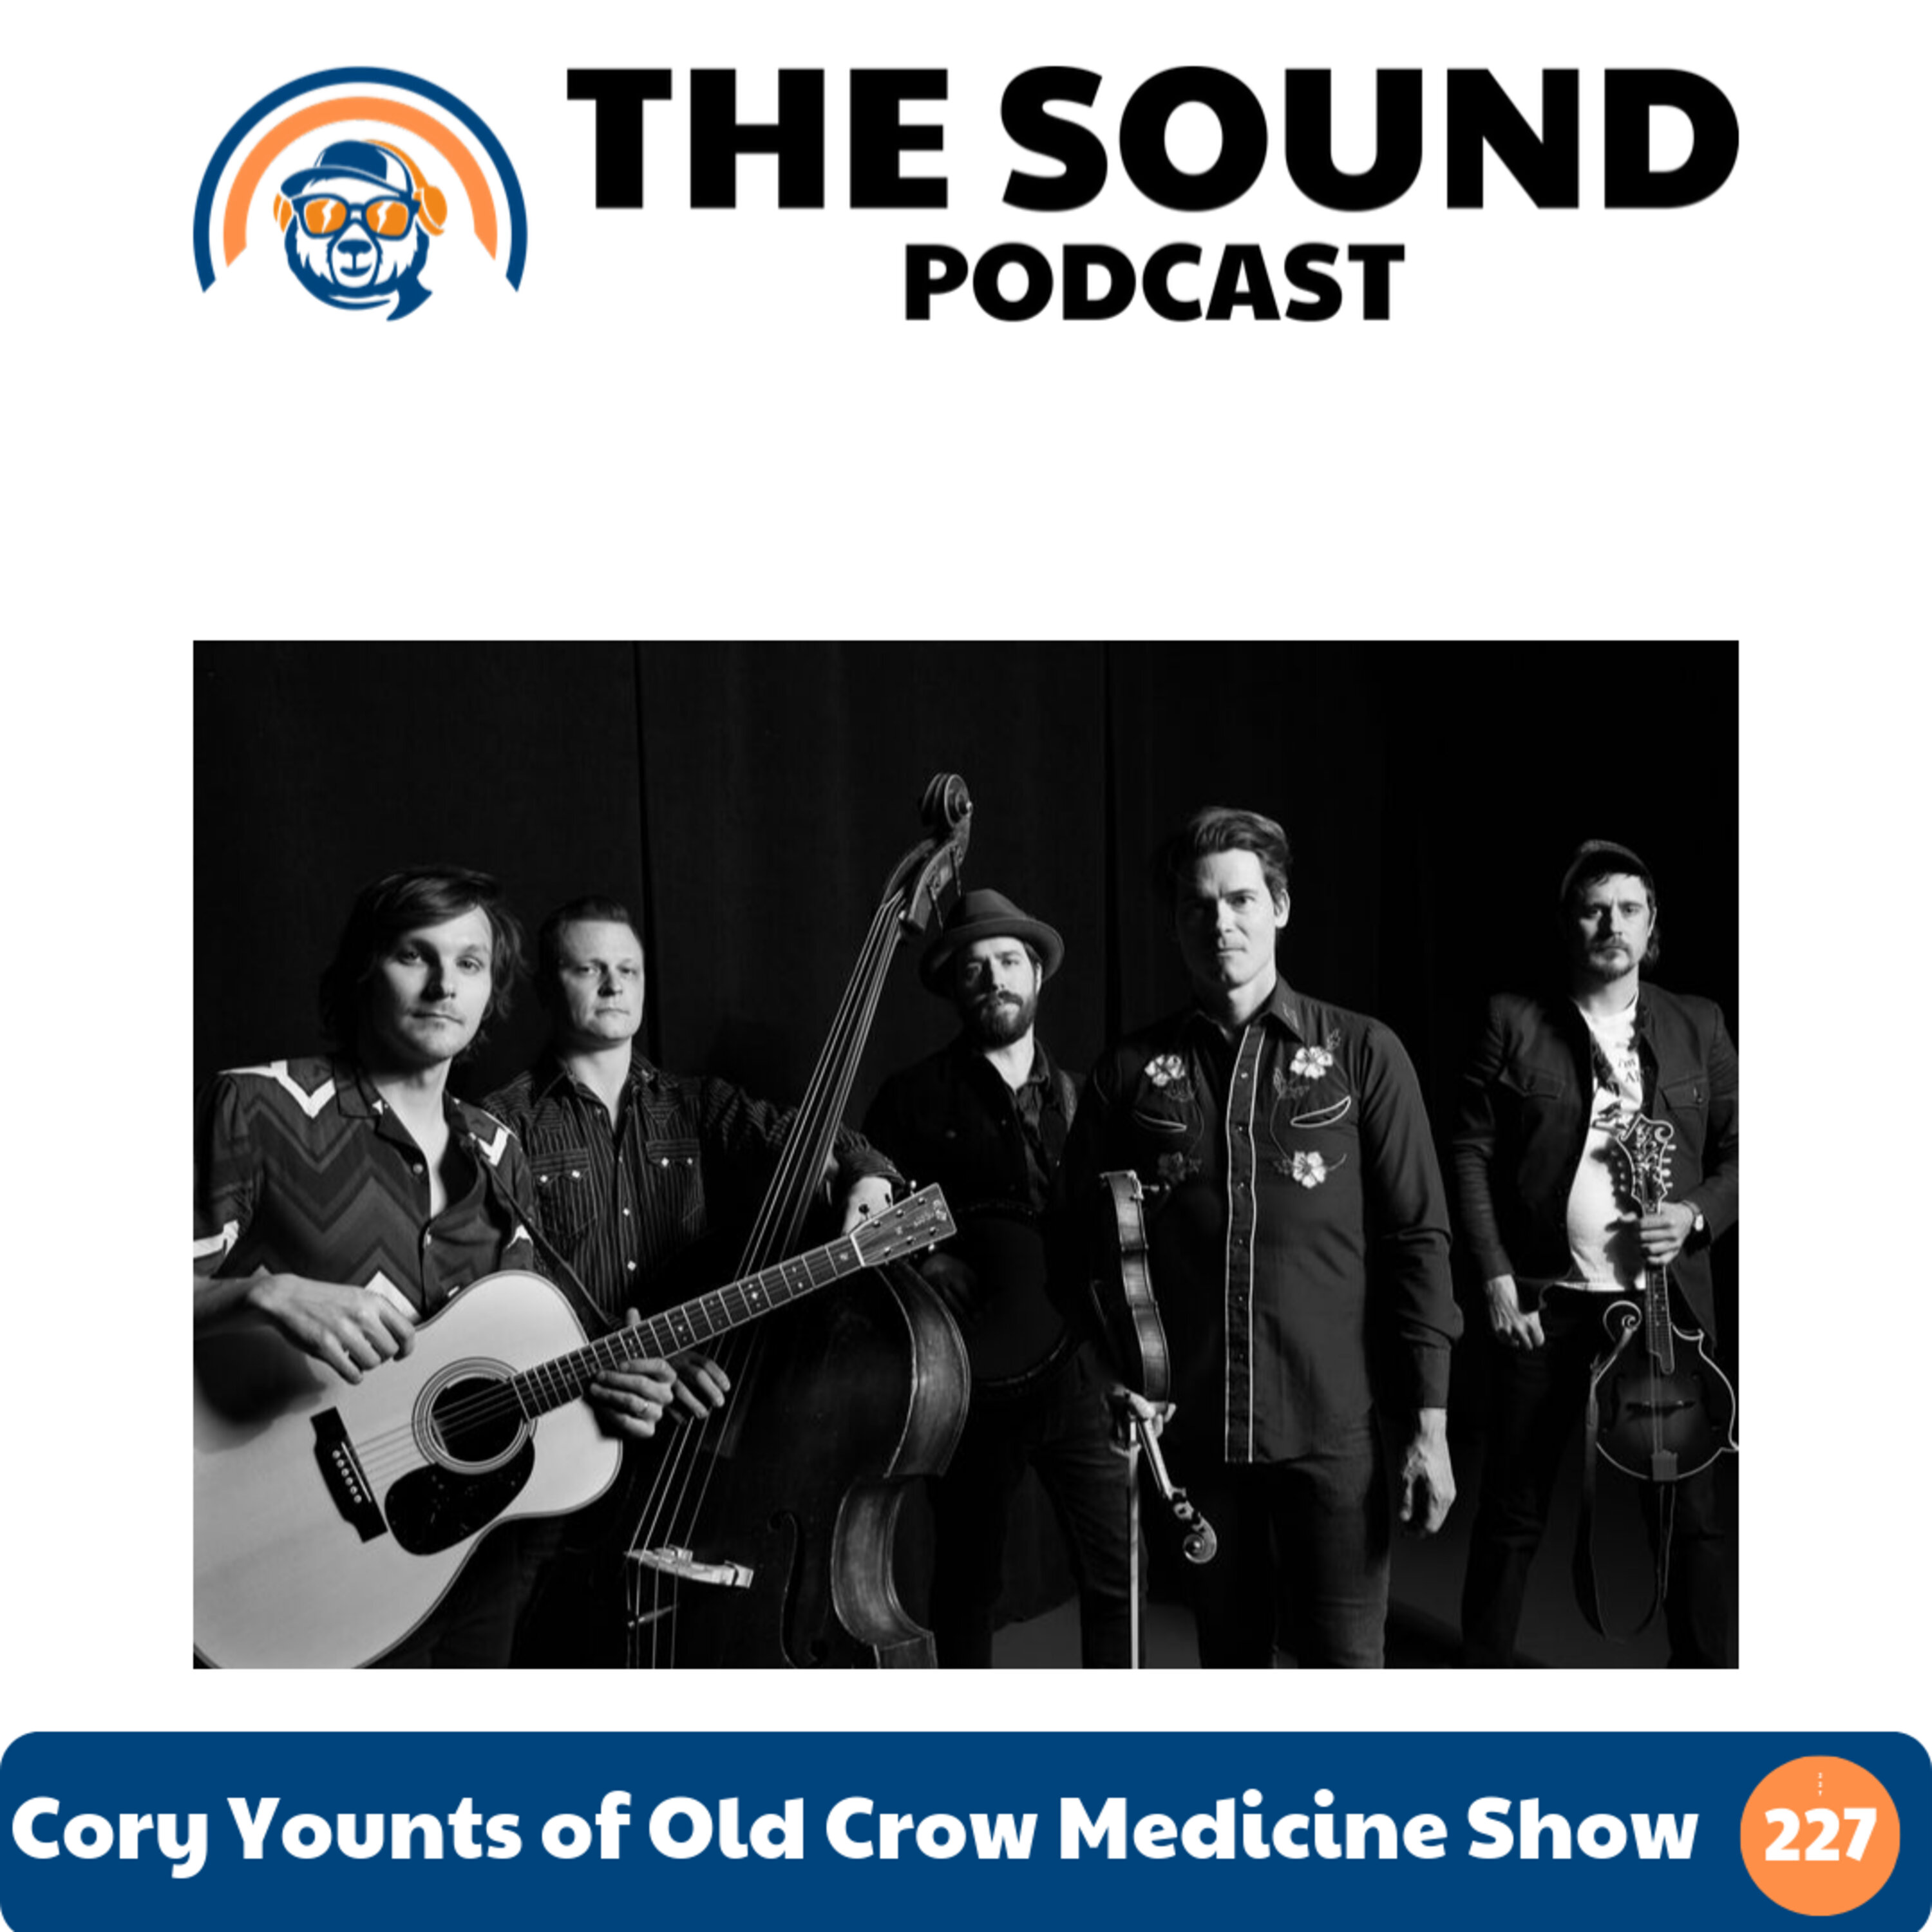 Cory Younts of Old Crow Medicine Show